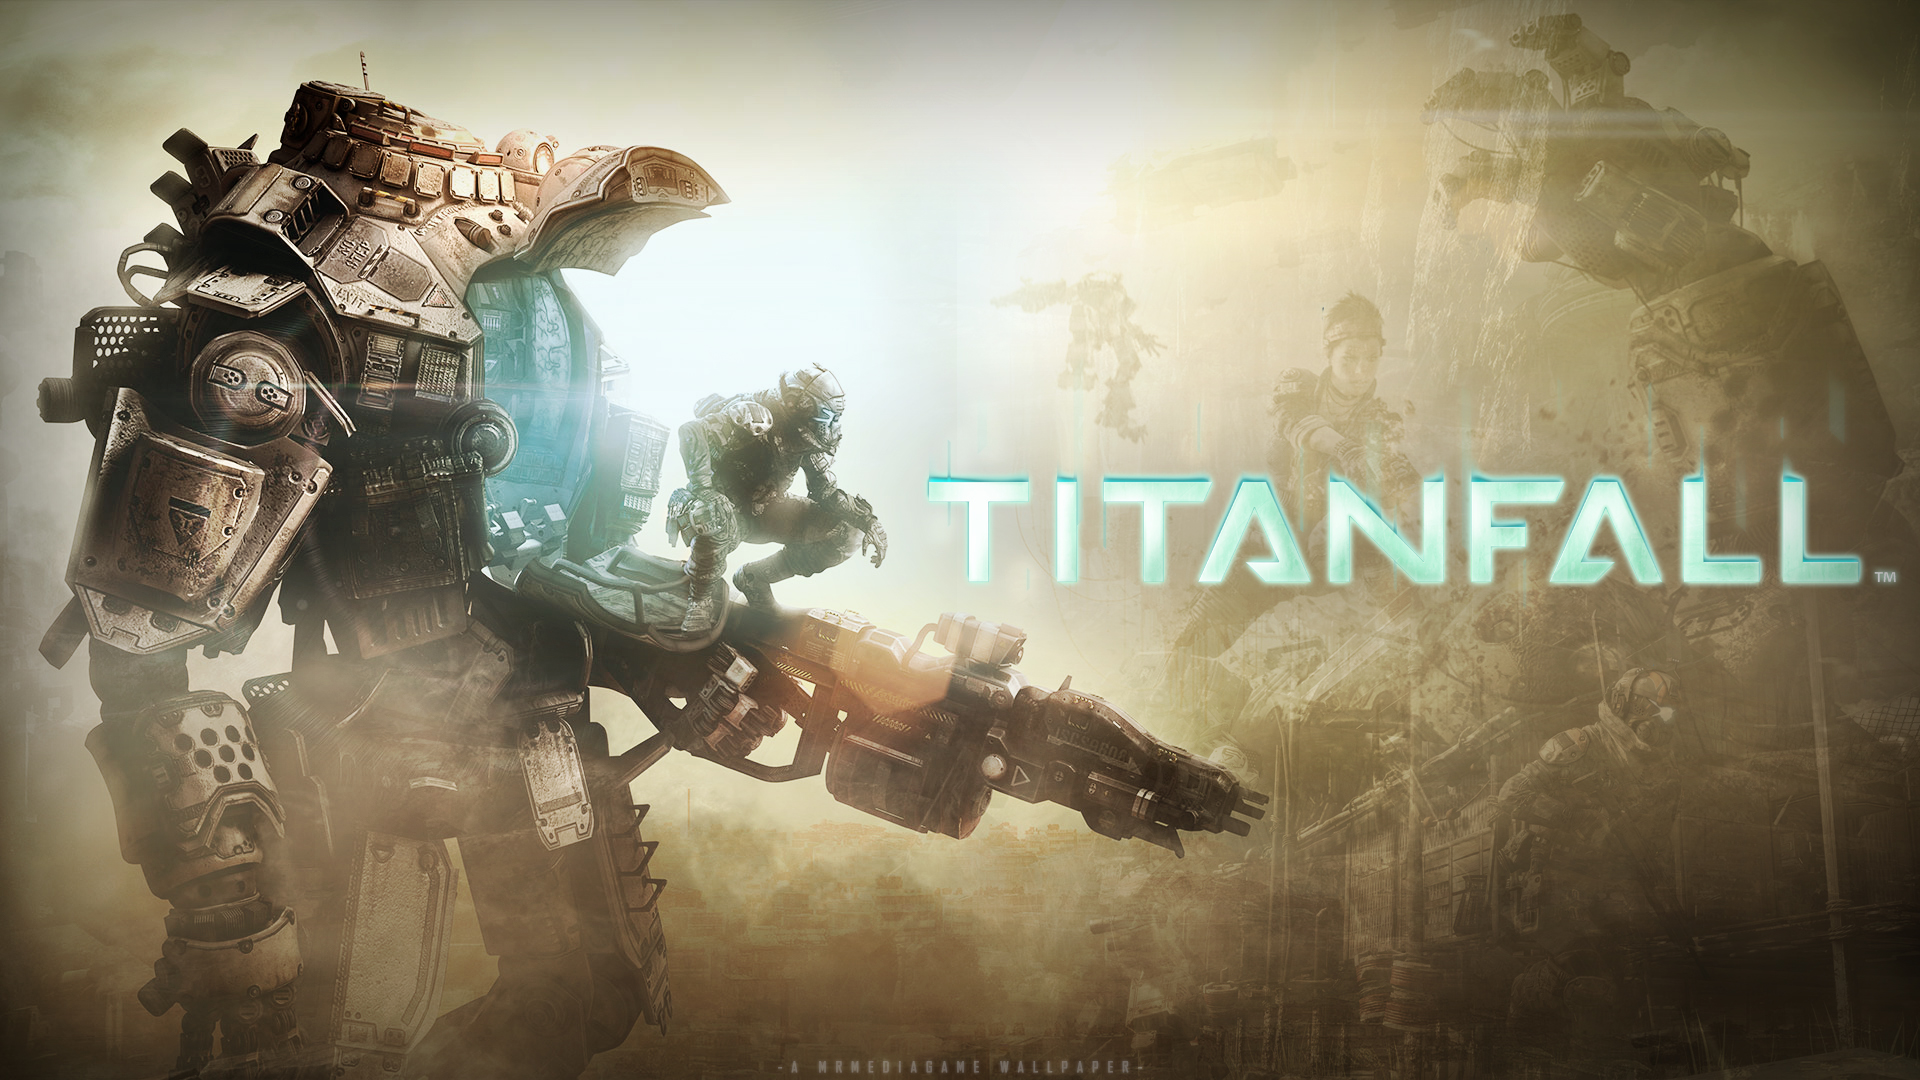 Titanfall wallpaper by mrmediagame on deviantart - Epic titanfall 2 wallpapers ...